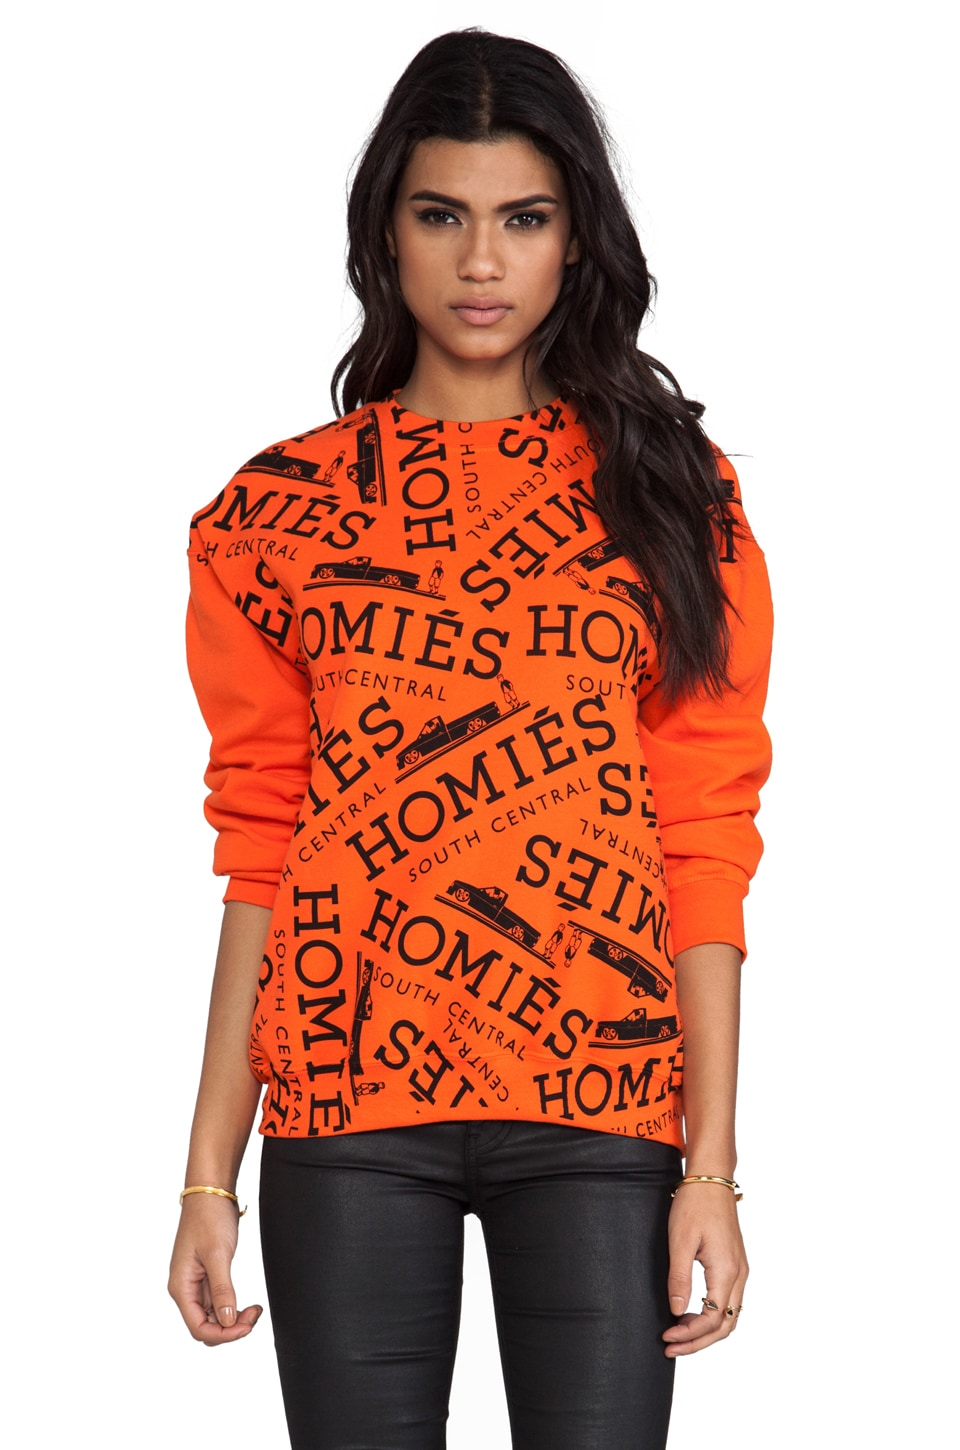 Brian Lichtenberg Homies Graffiti Sweatshirt in Orange/Black